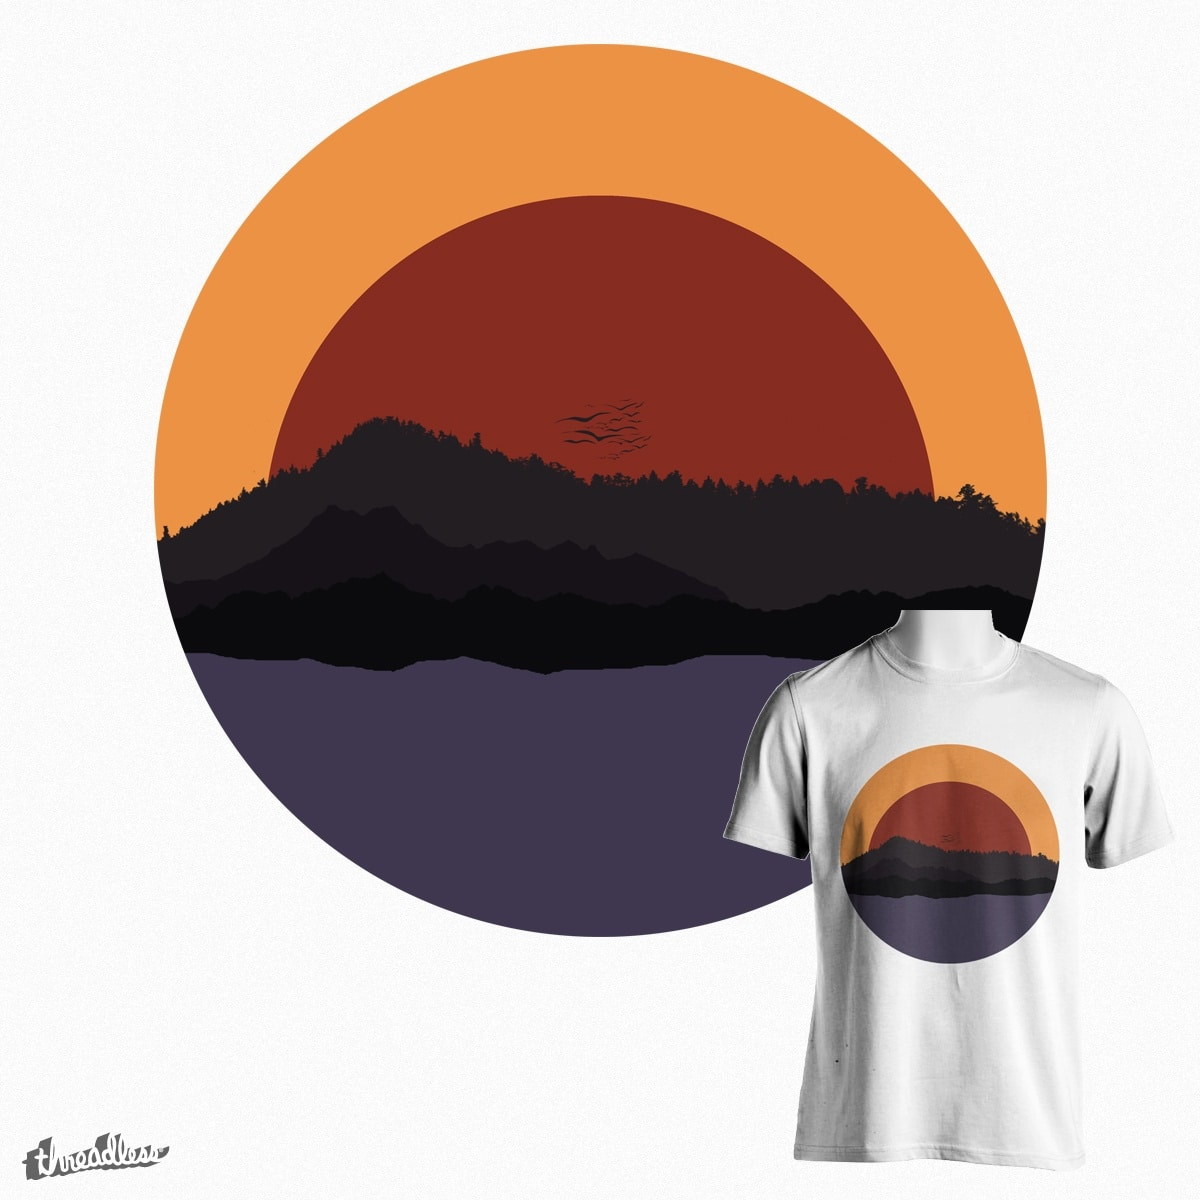 Sunset by andreicalkins on Threadless